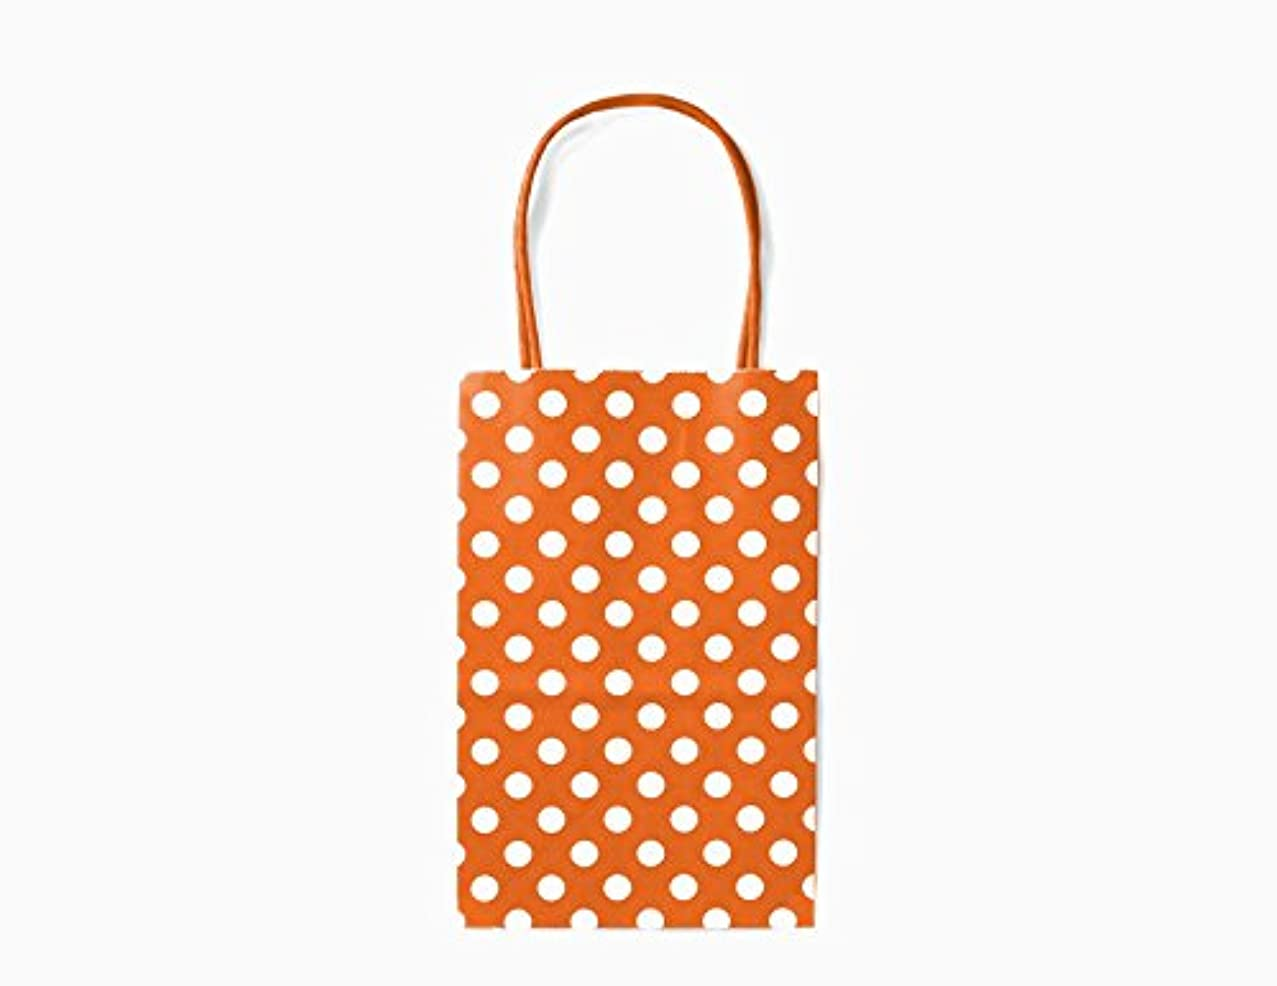 12CT Small Orange Polka DOT Biodegradable, Food Safe Ink & Paper, Premium Quality Paper (Sturdy & Thicker), Kraft Bag with Colored Sturdy Handle (Small, P.Orange)